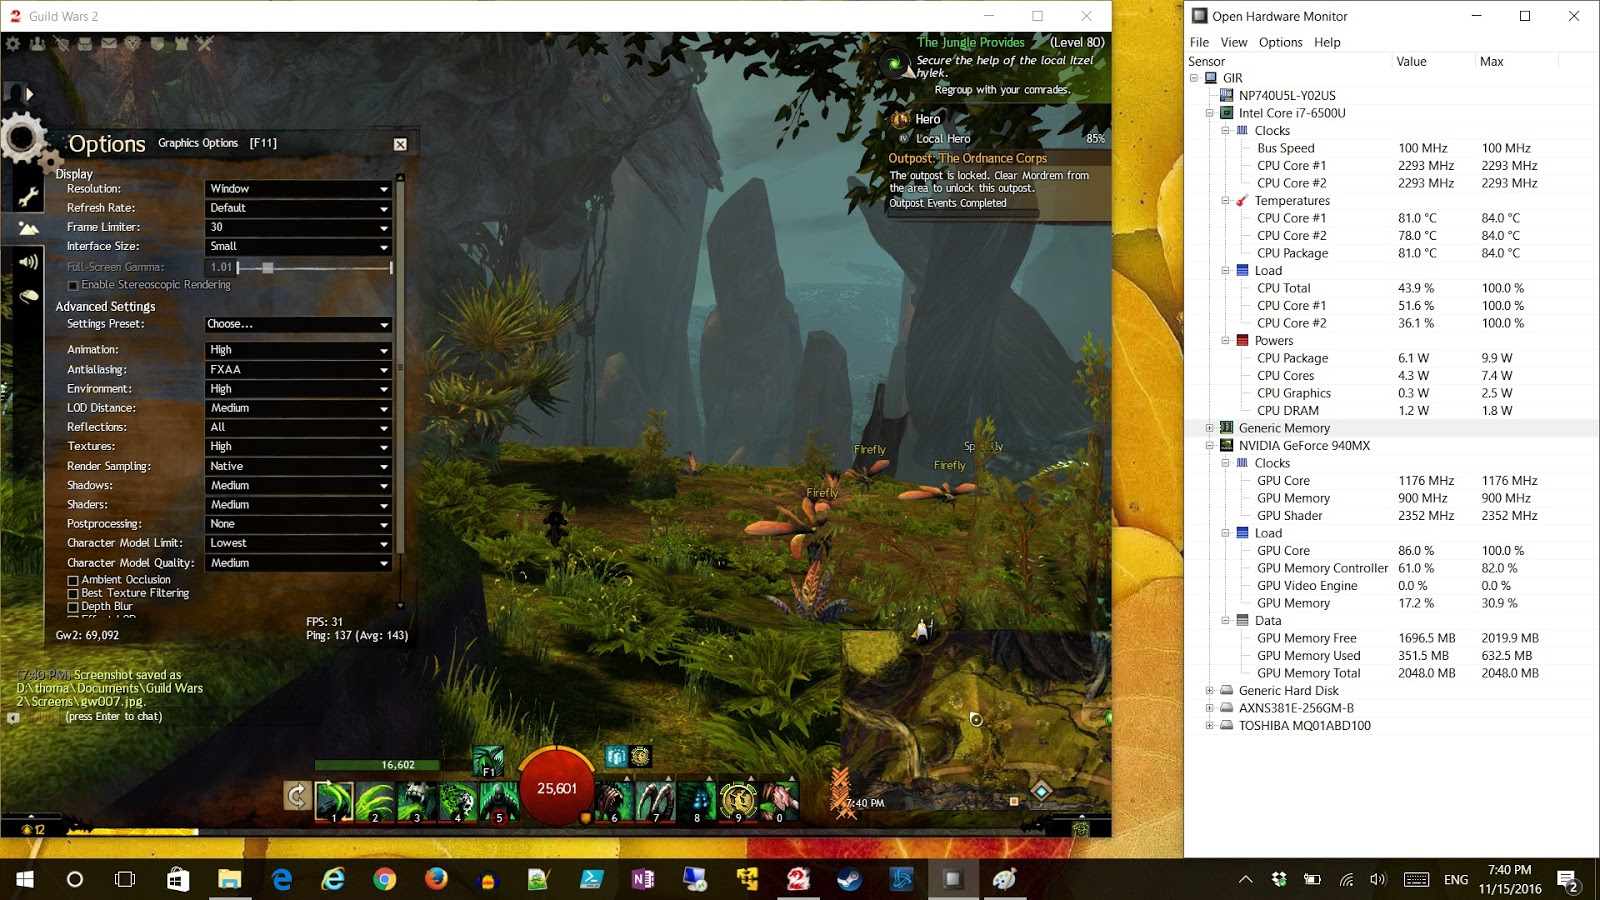 Tom's Random Tech Blog: Guild Wars 2 Graphics Settings on